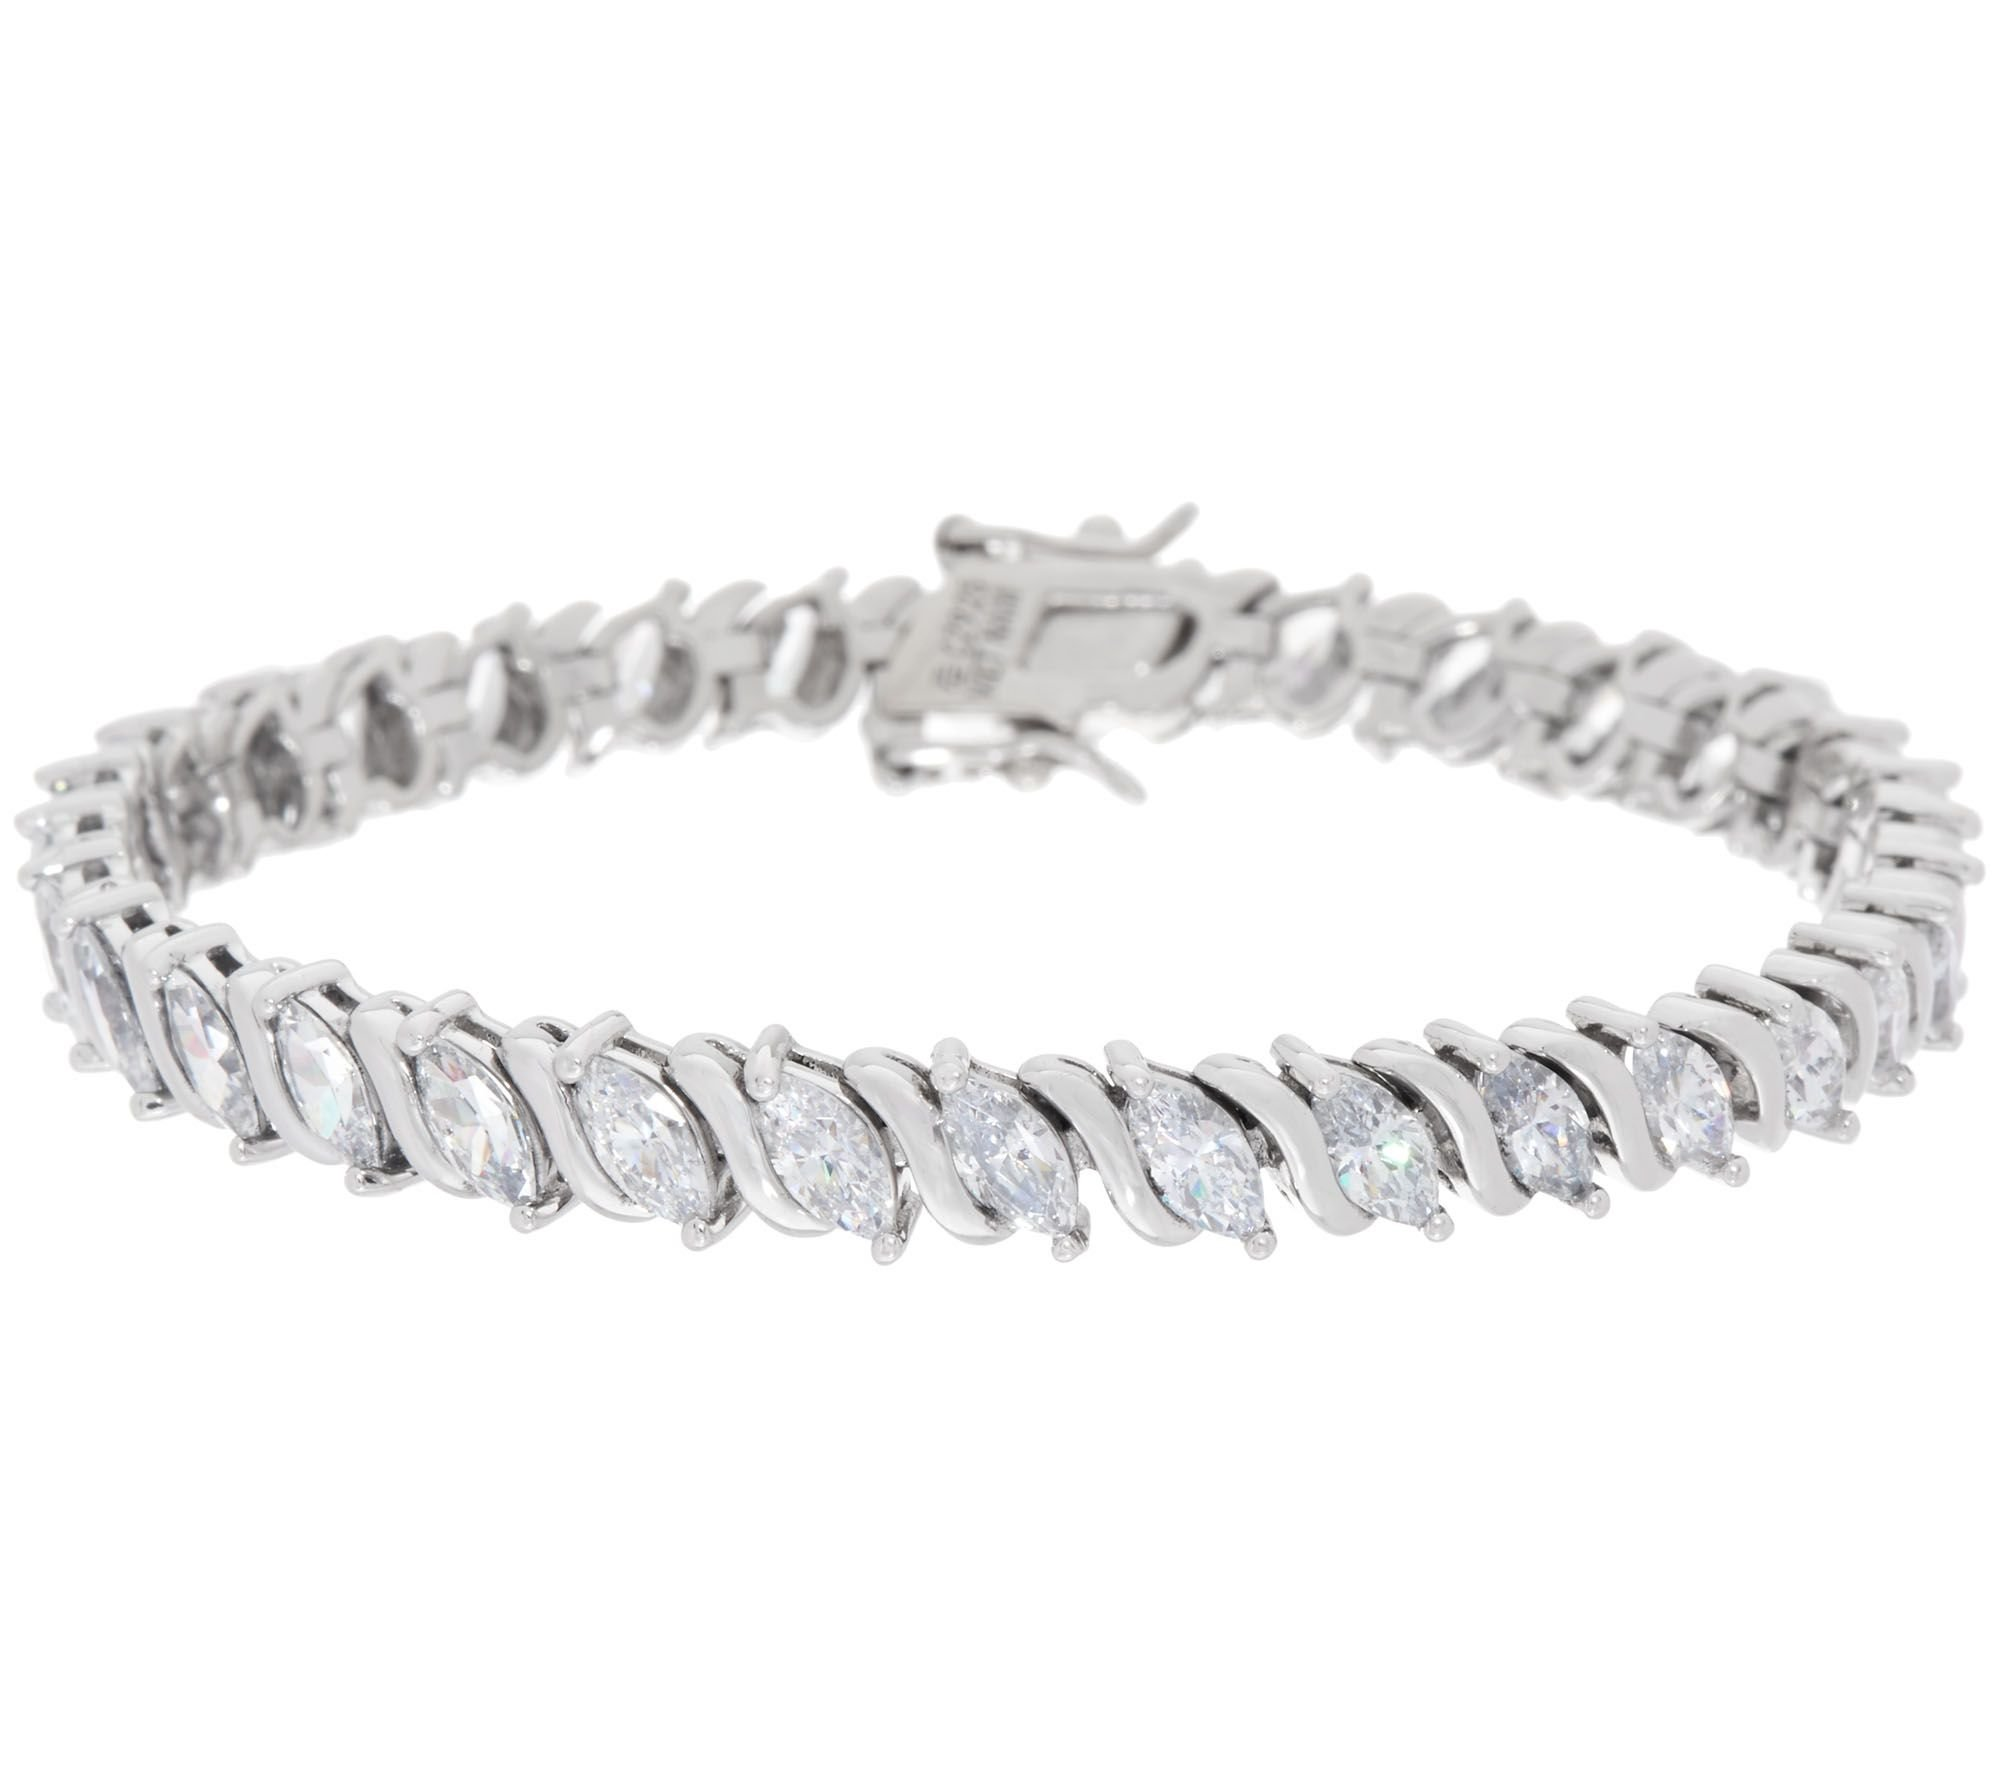 Smjewels 8.65 Ct Prong-Set Marquise Cut D/VVS1 Diamond 14K White Gold Plated Tennis Bracelet by Smjewels